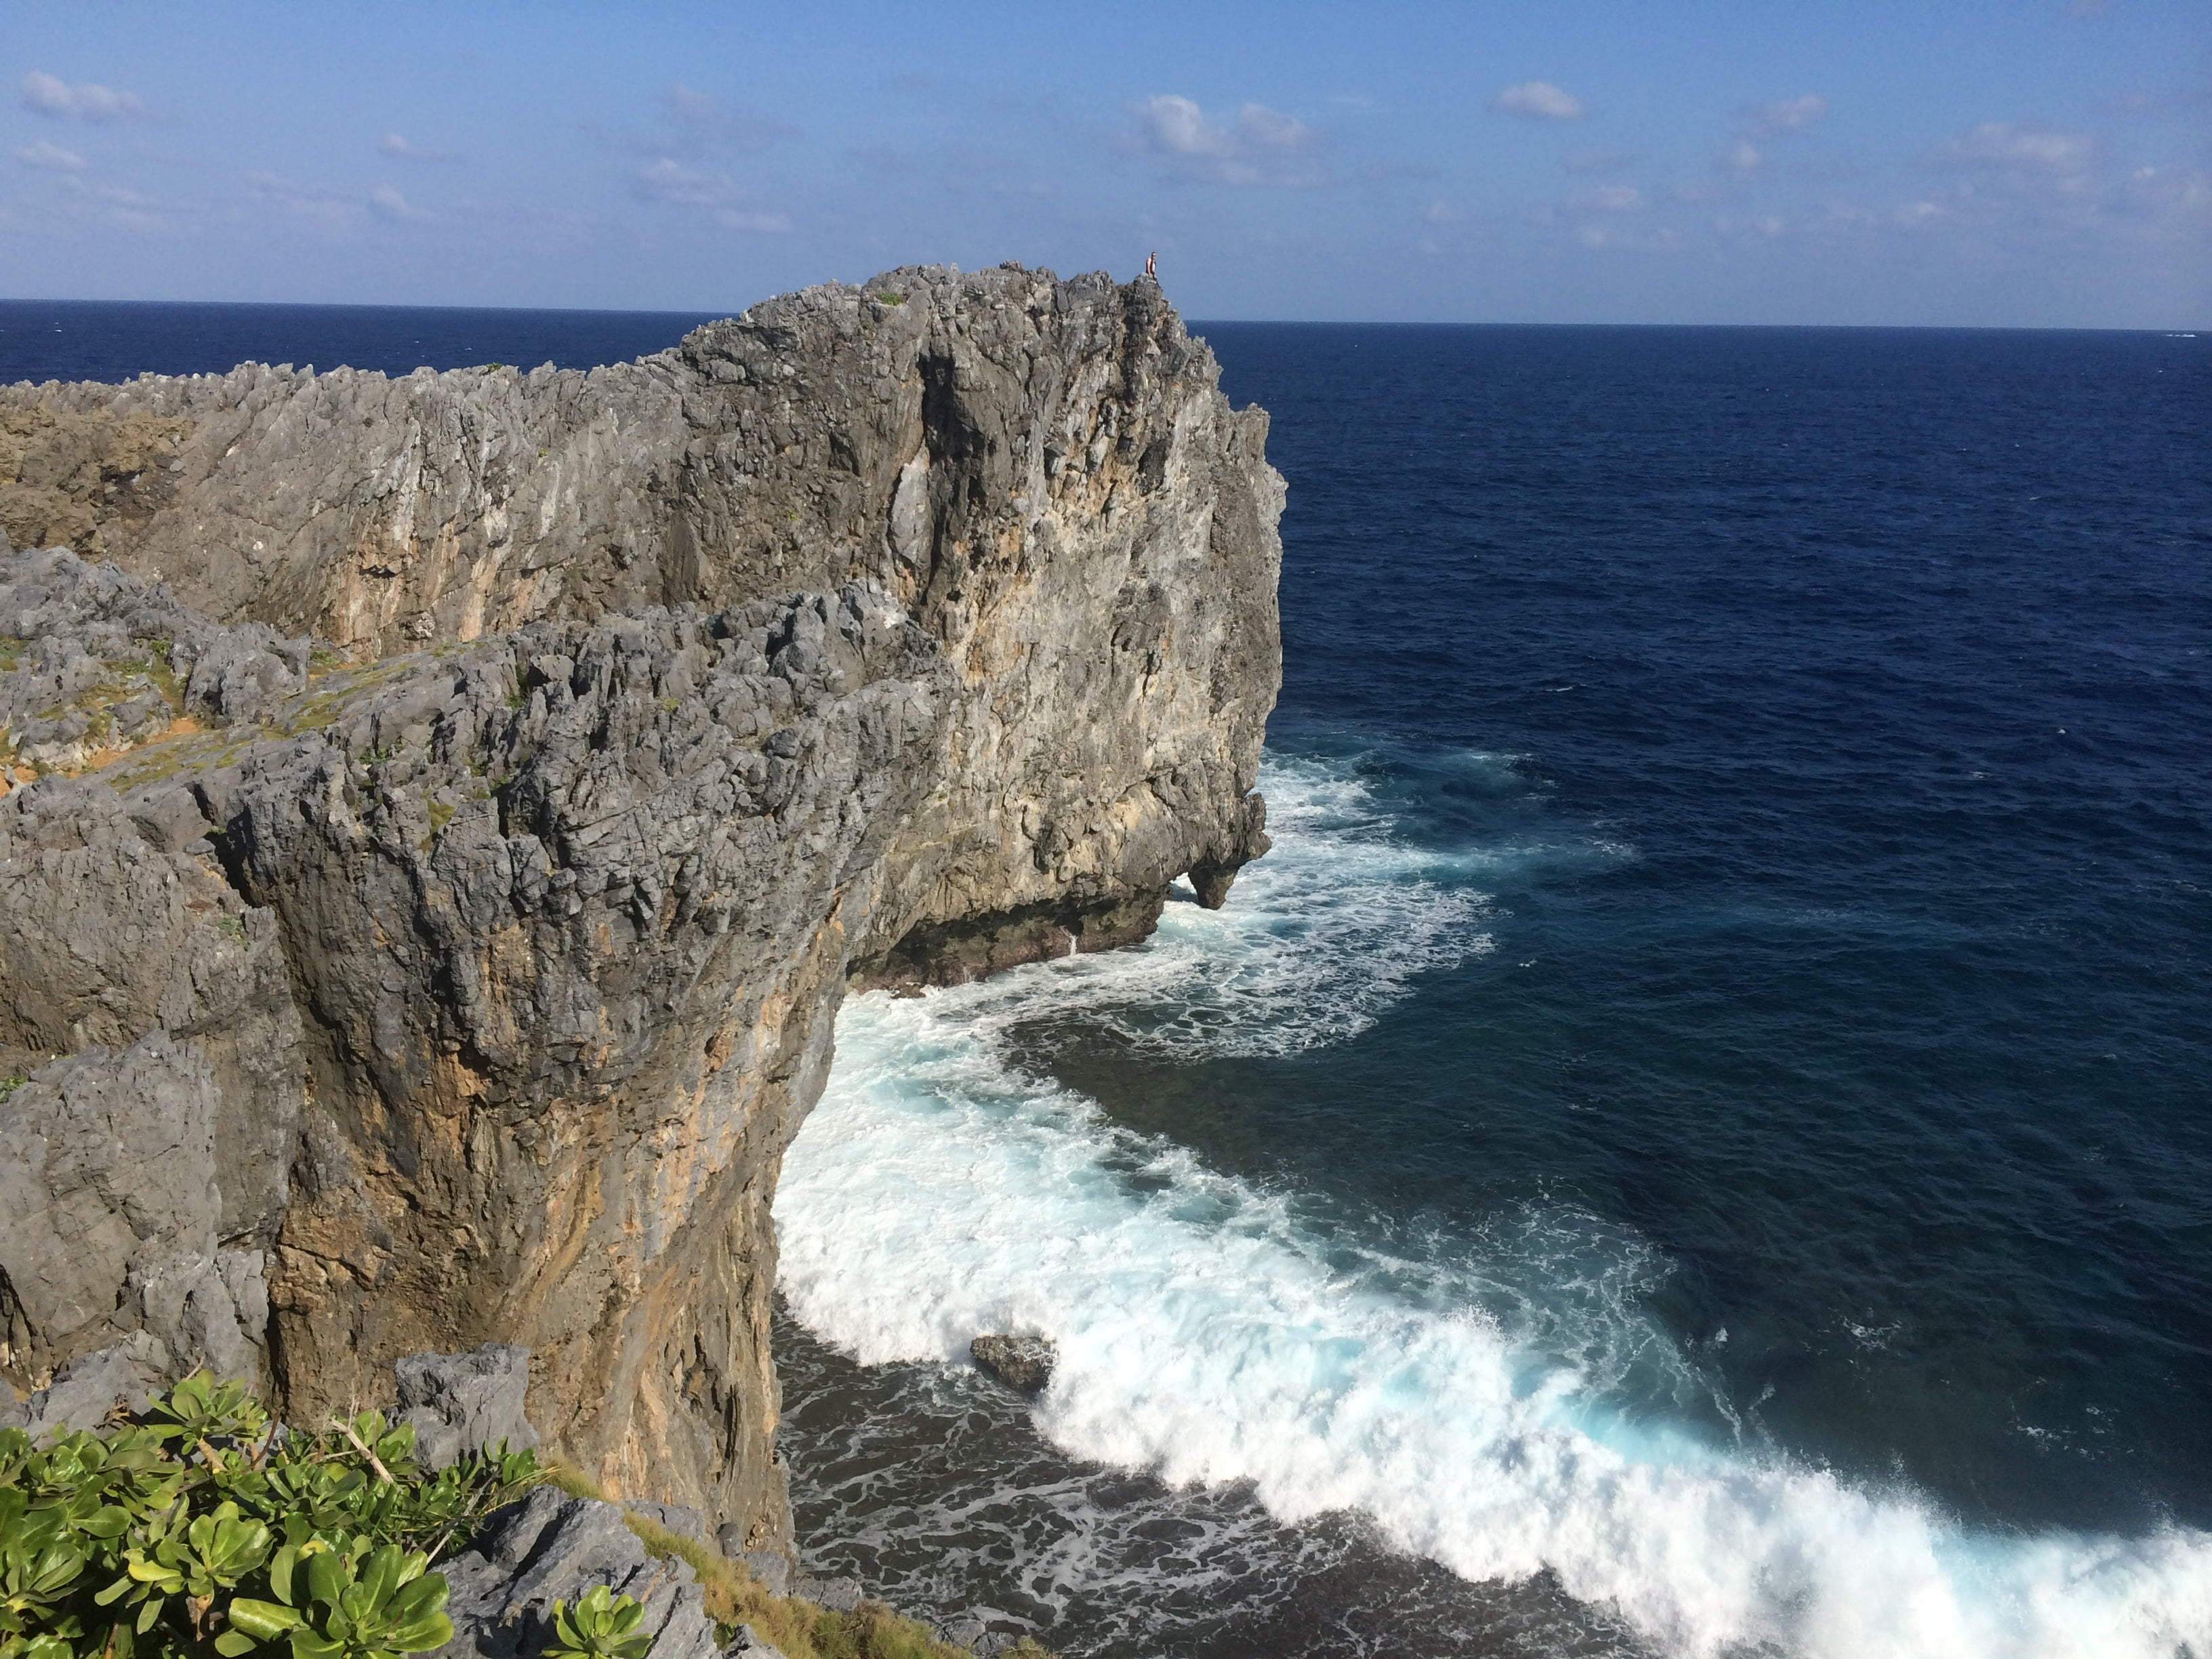 Cape Hedo of Okinawa Japan